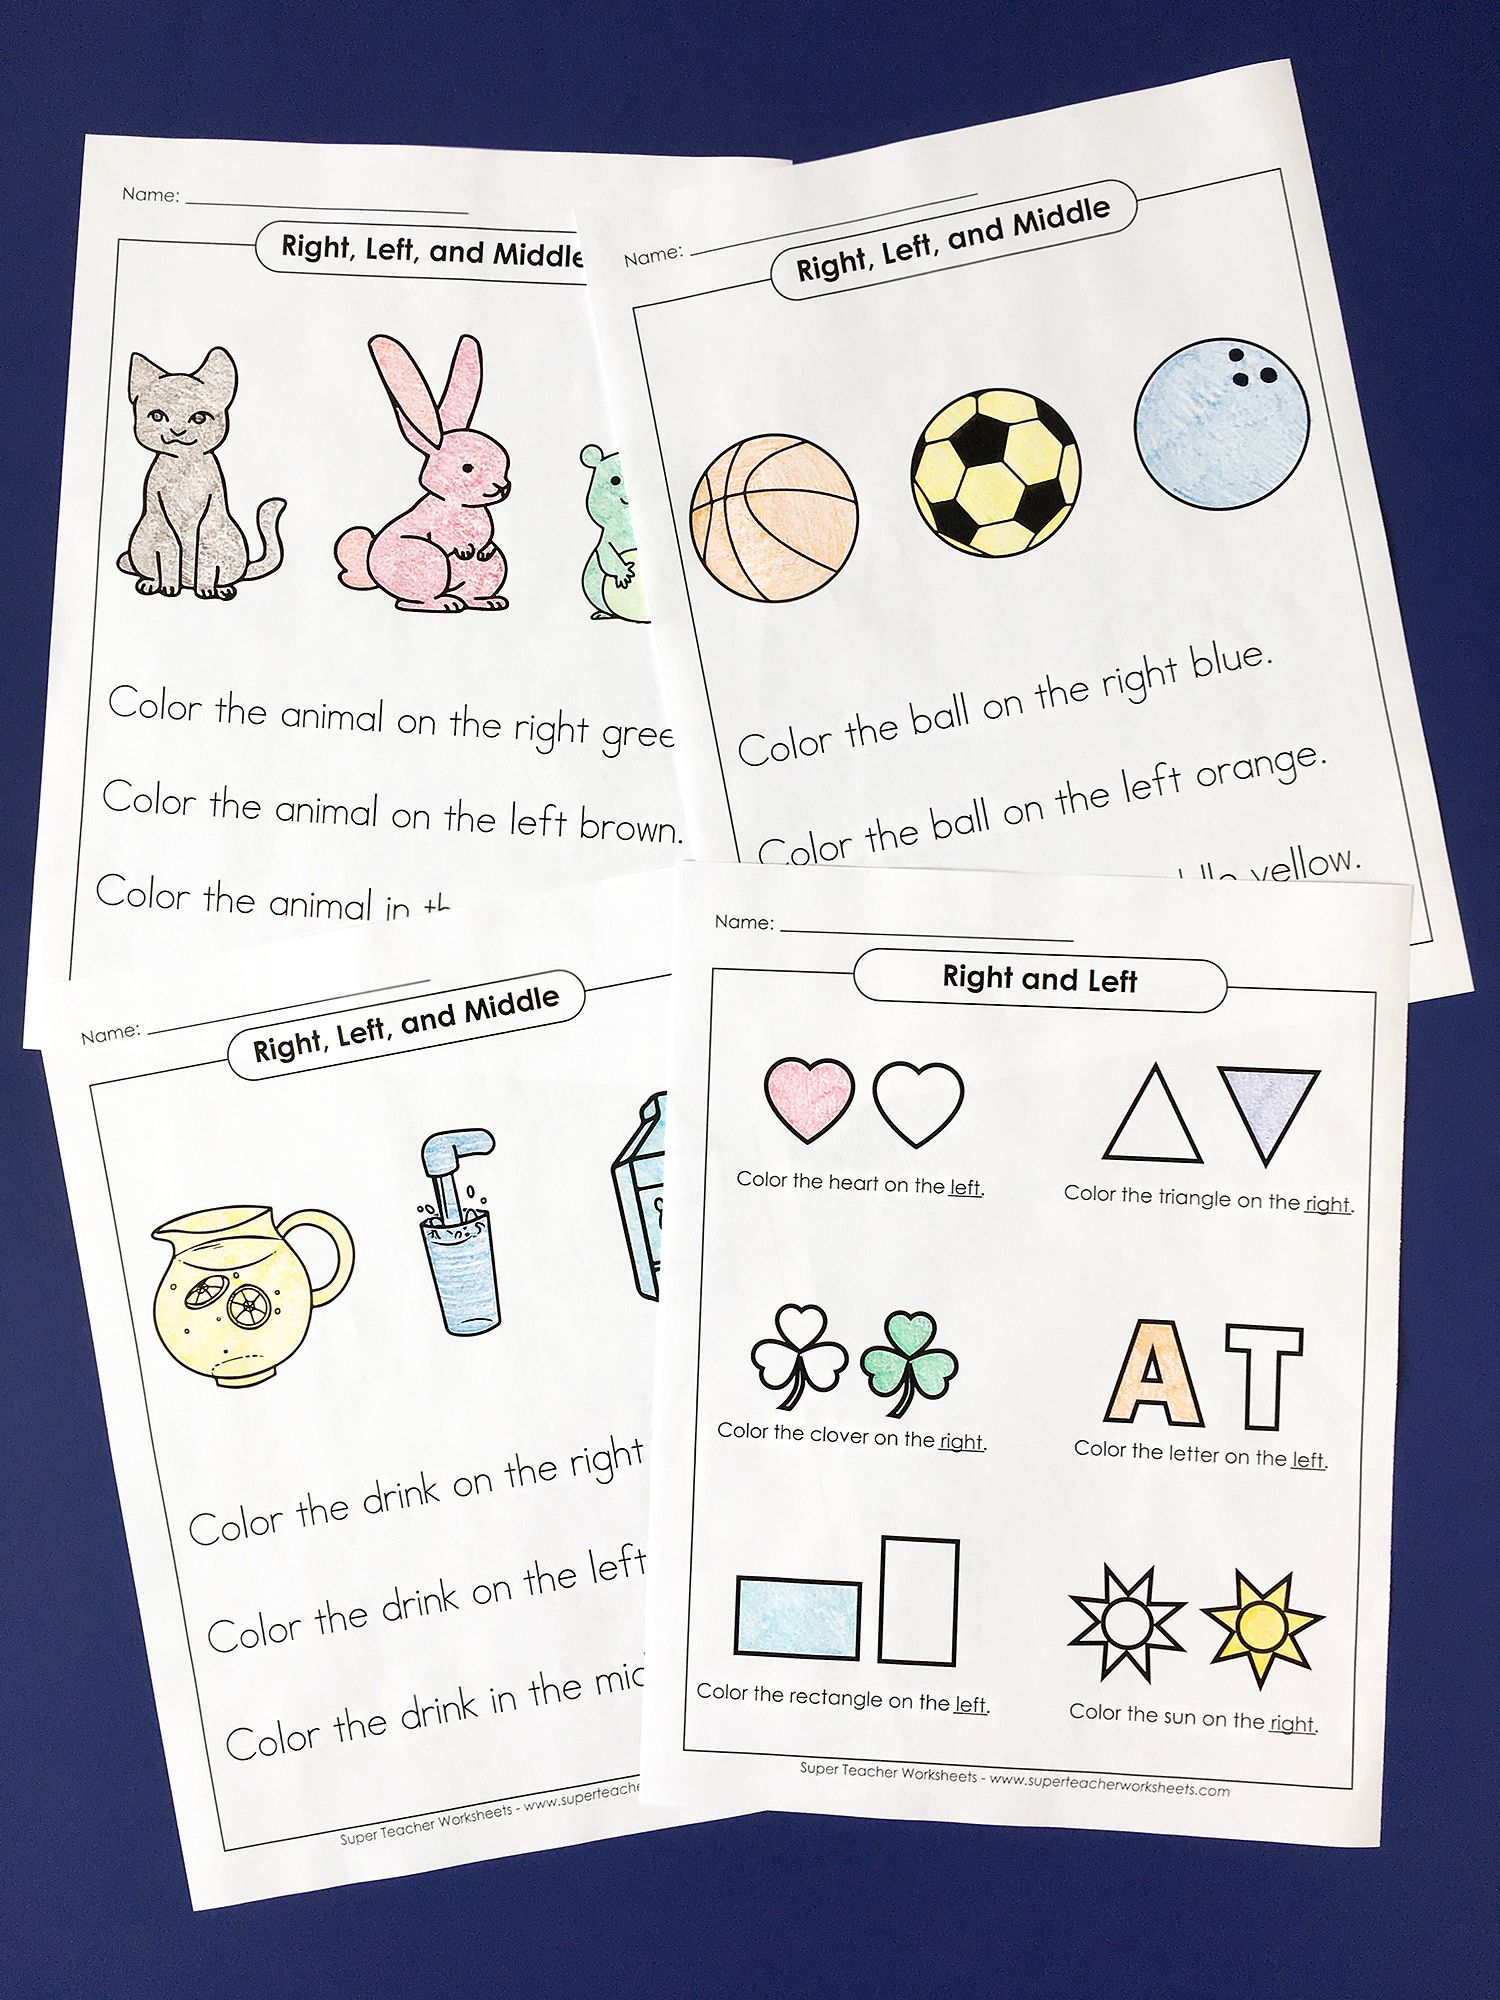 Did You Know Super Teacher Worksheets Has Activities For